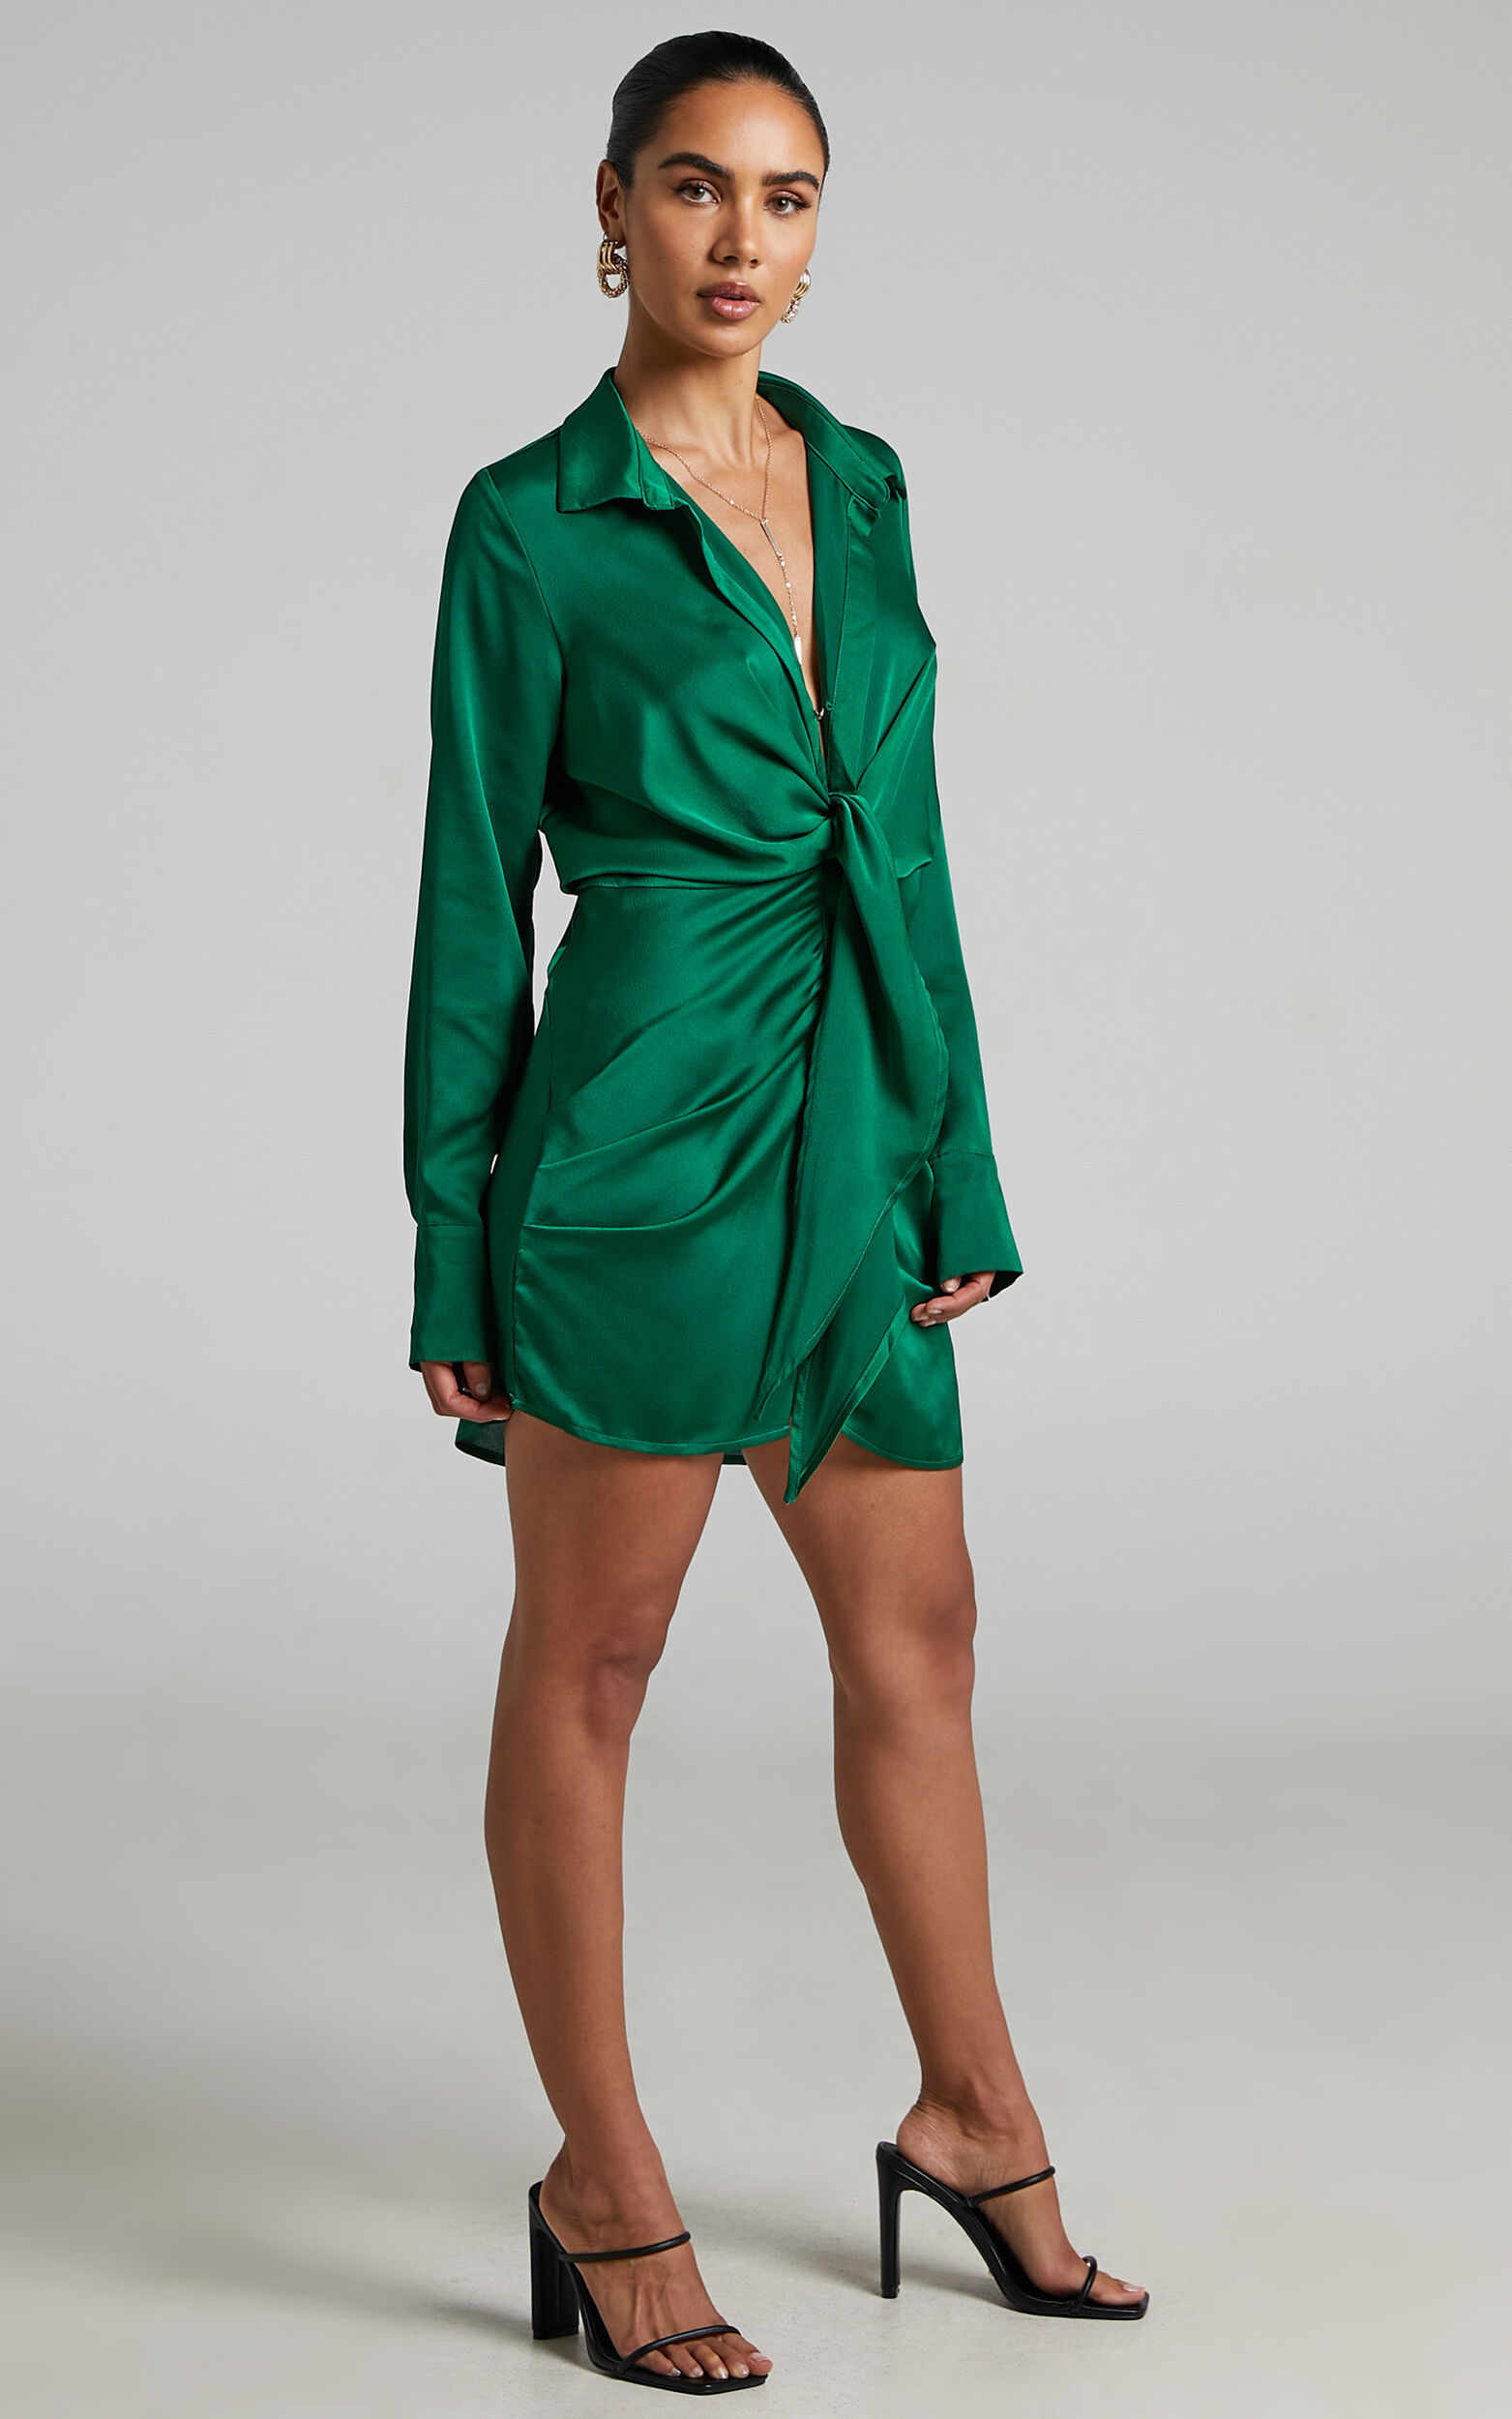 Runaway The Label - Ruby Shirt Dress in Emerald - L, GRN3, super-hi-res image number null